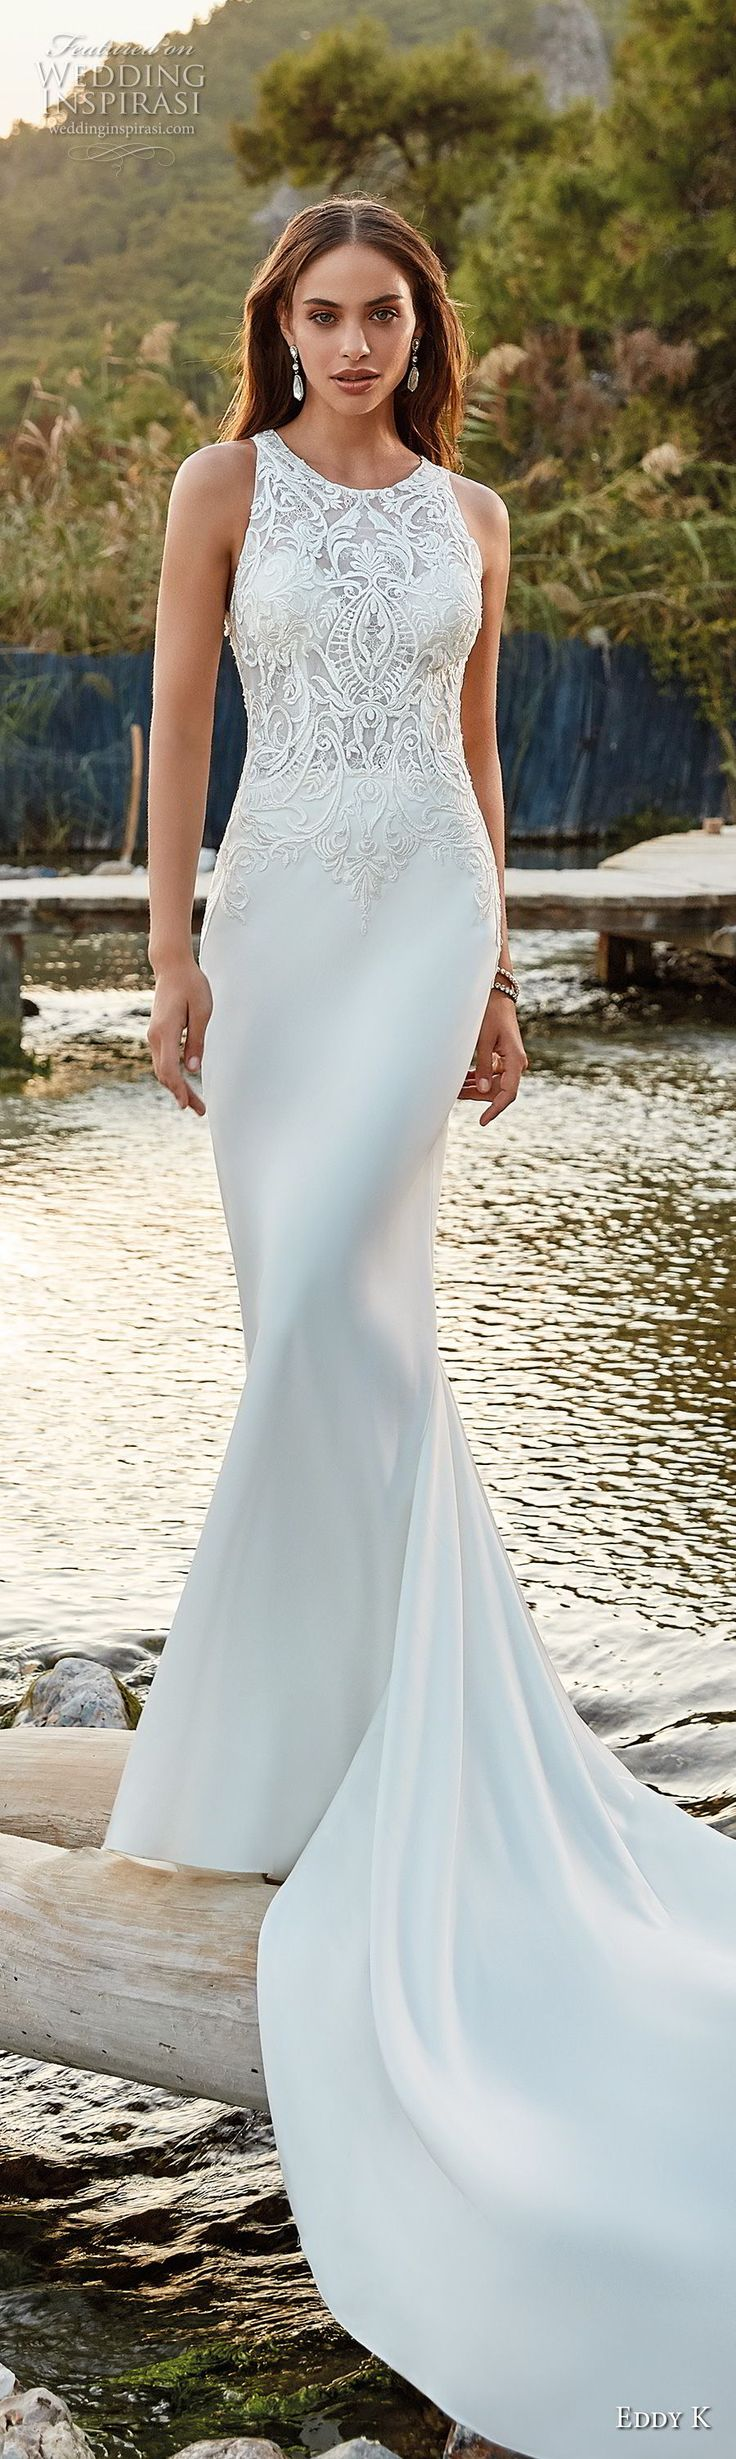 7117 best Beautiful Wedding Dresses images on Pinterest | Wedding ...